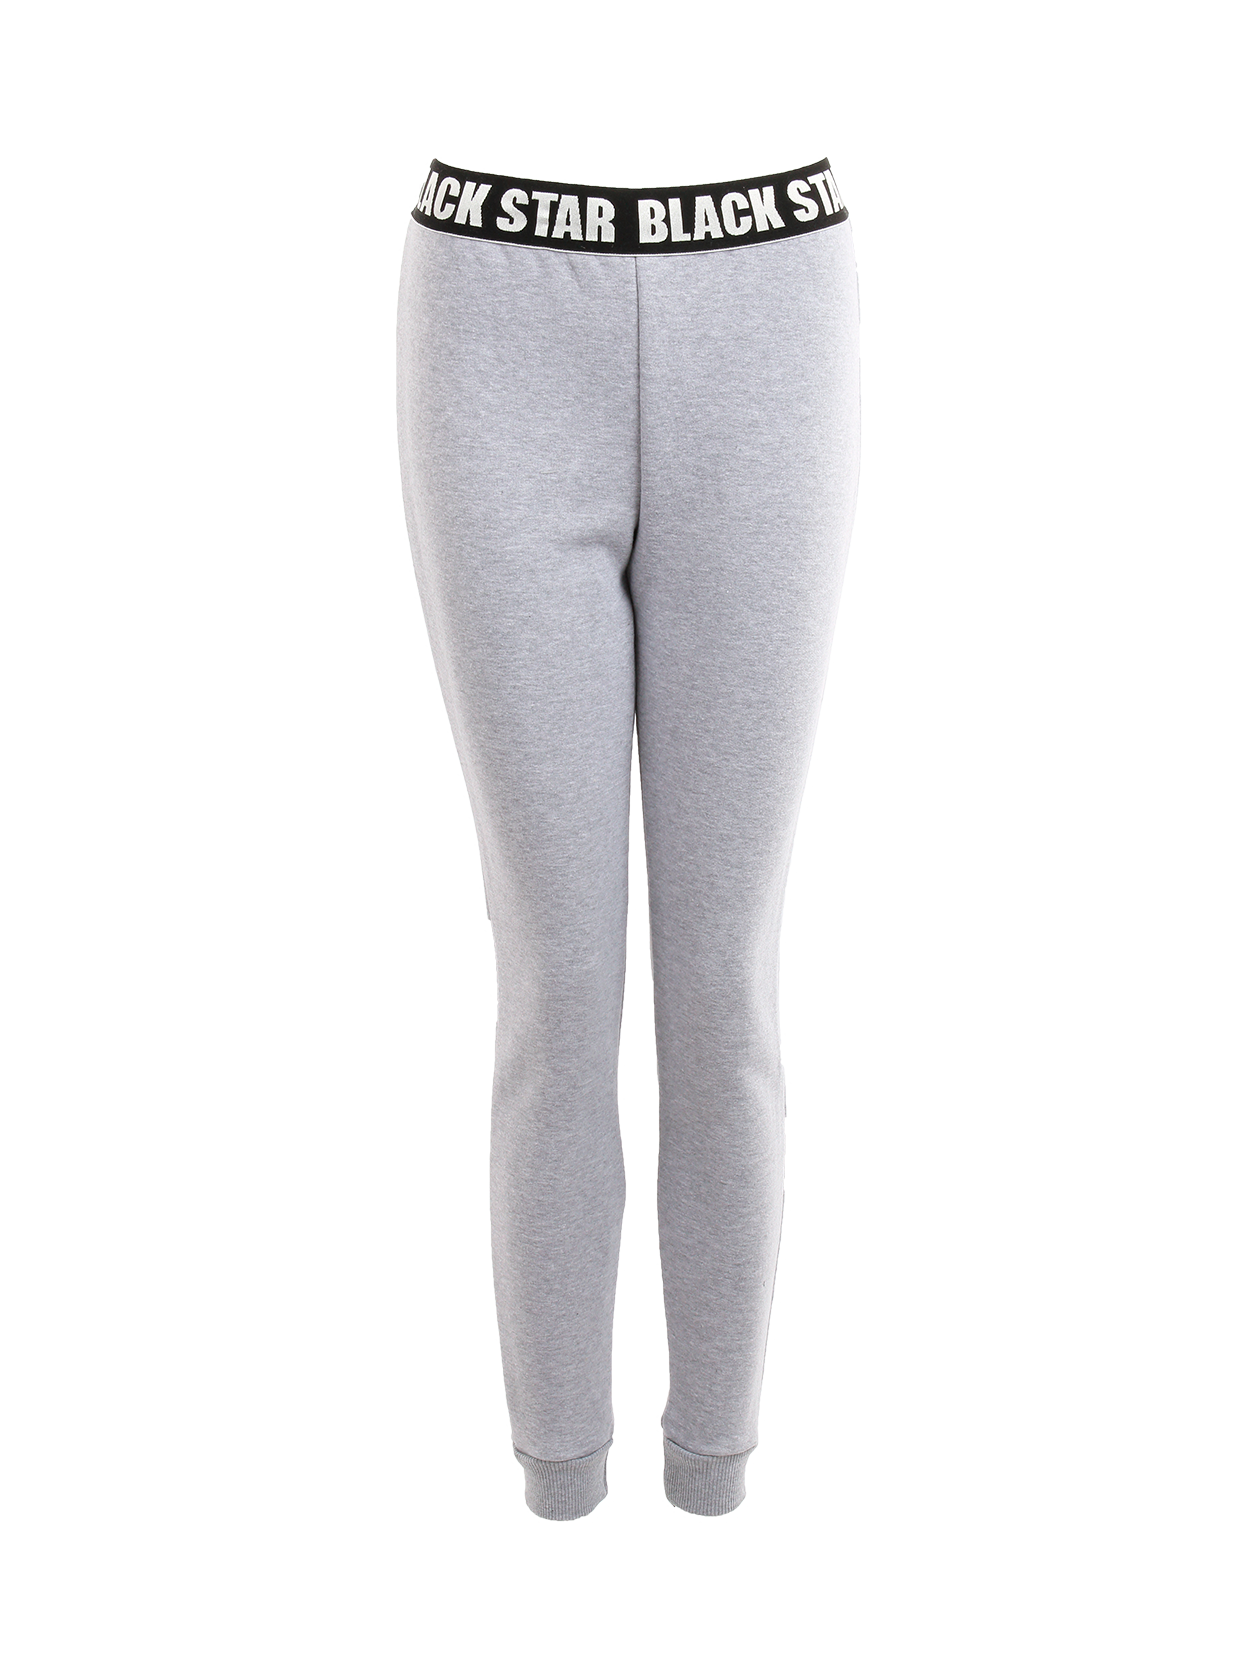 Womens Joggers BLACK + STAR 13Womens sweatpants by Black Star Wear. High waist with an elastic branded band. Soft touch cotton blend that keeps warmth in cold weather. Avaliable in black and gray.<br><br>size: XS<br>color: Grey<br>gender: female